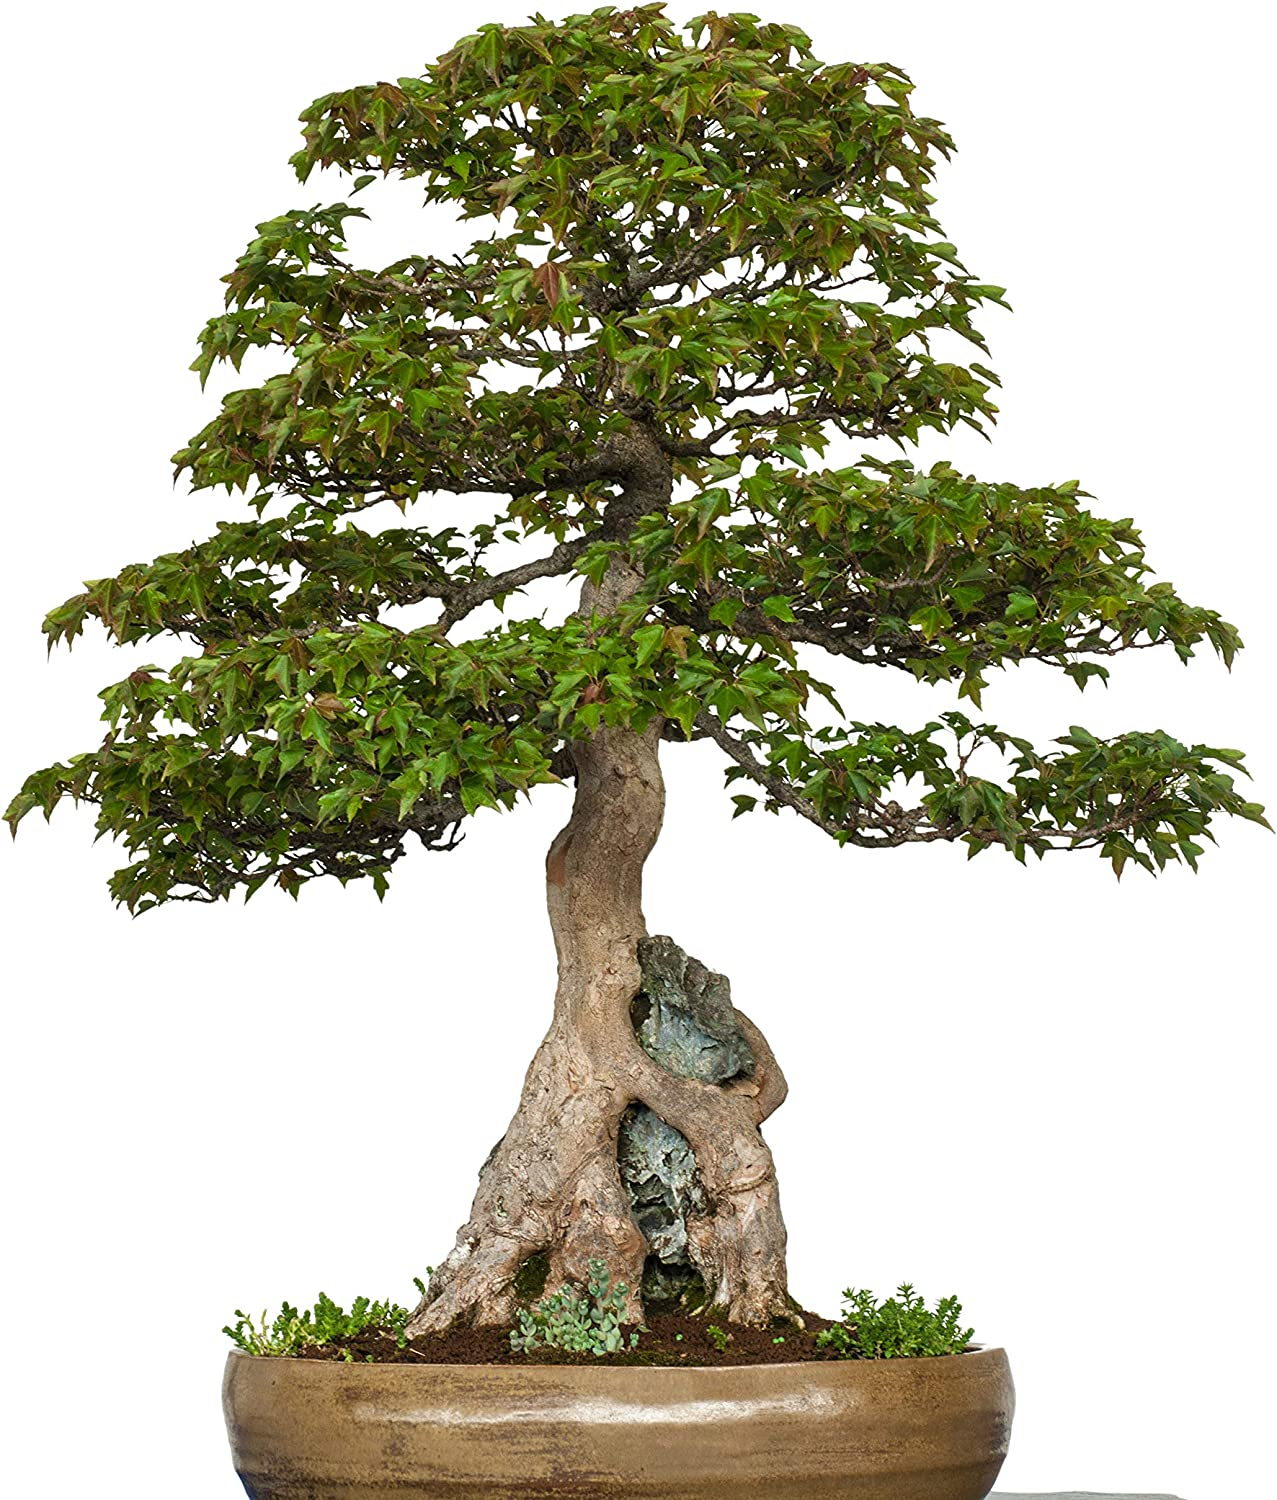 Acer Buergerianum 30 Trident Maple Bonsai Seeds Growing Guide Grow Your Own Bonsai Tree Perfect for Bonsai Beginners and Enthusiasts